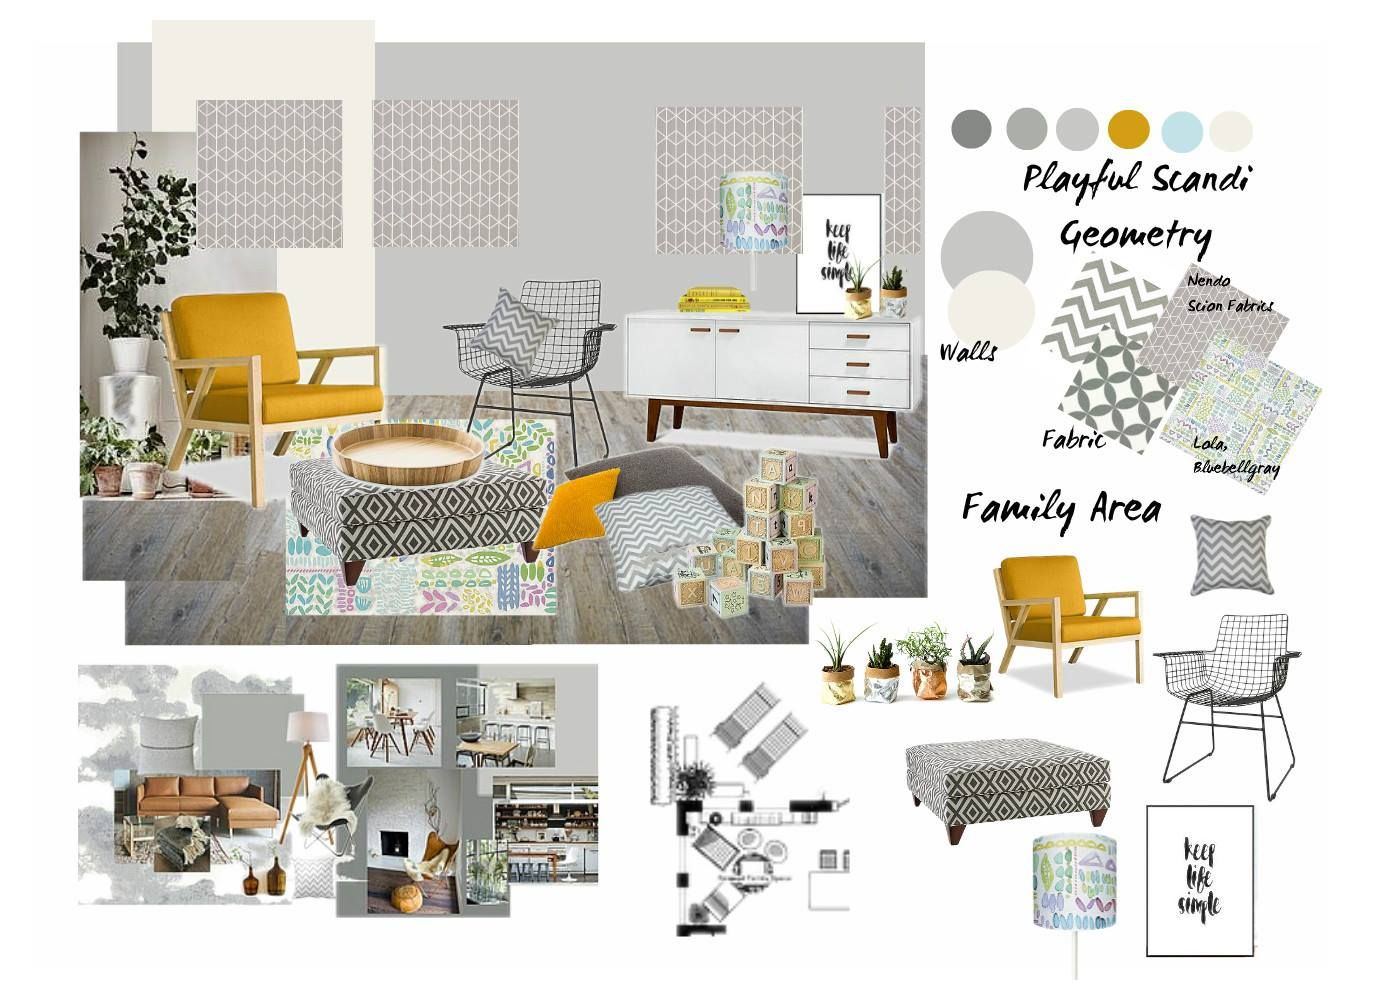 Pin By The Interior Design Institute On Student Assignments Interior Paint Interior Interior